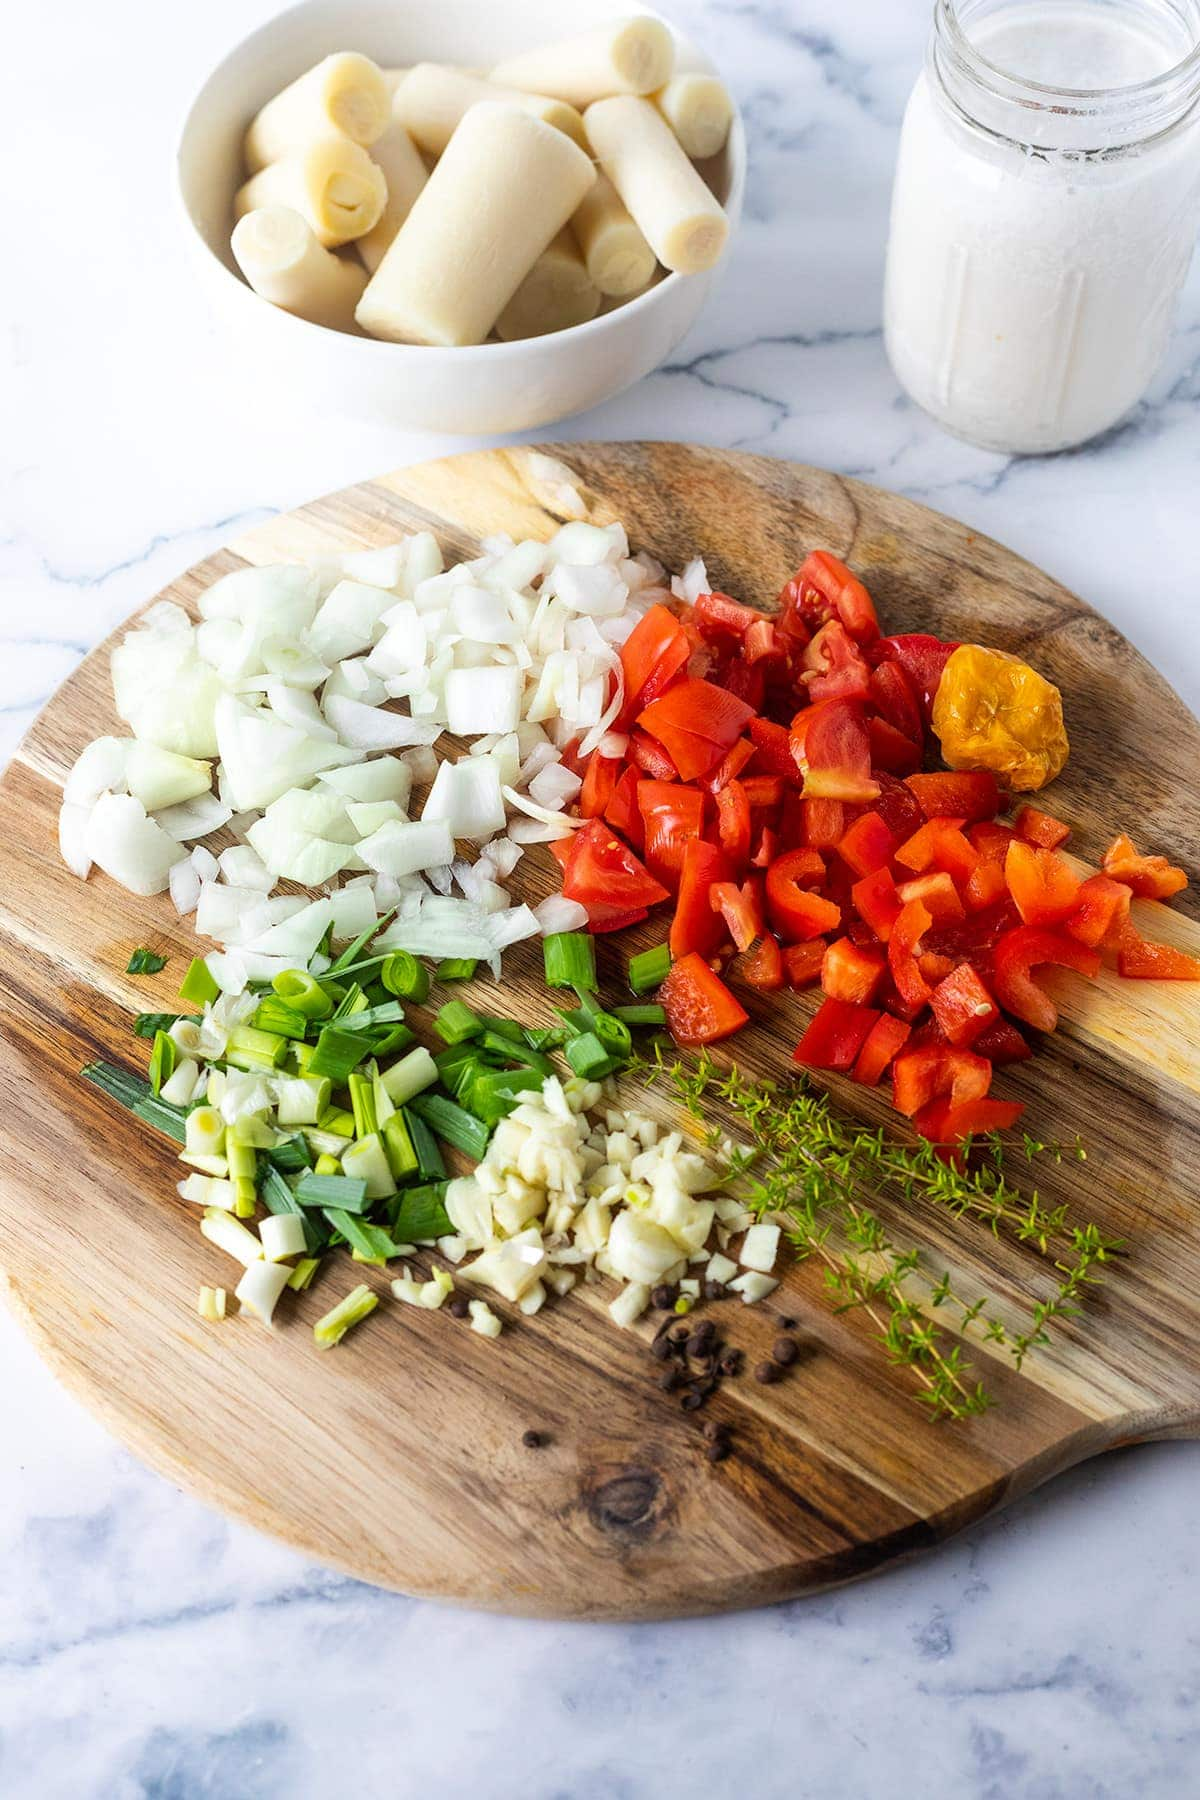 vegan salt fish rundown ingredients on cutting board with hearts of palm in white bowl